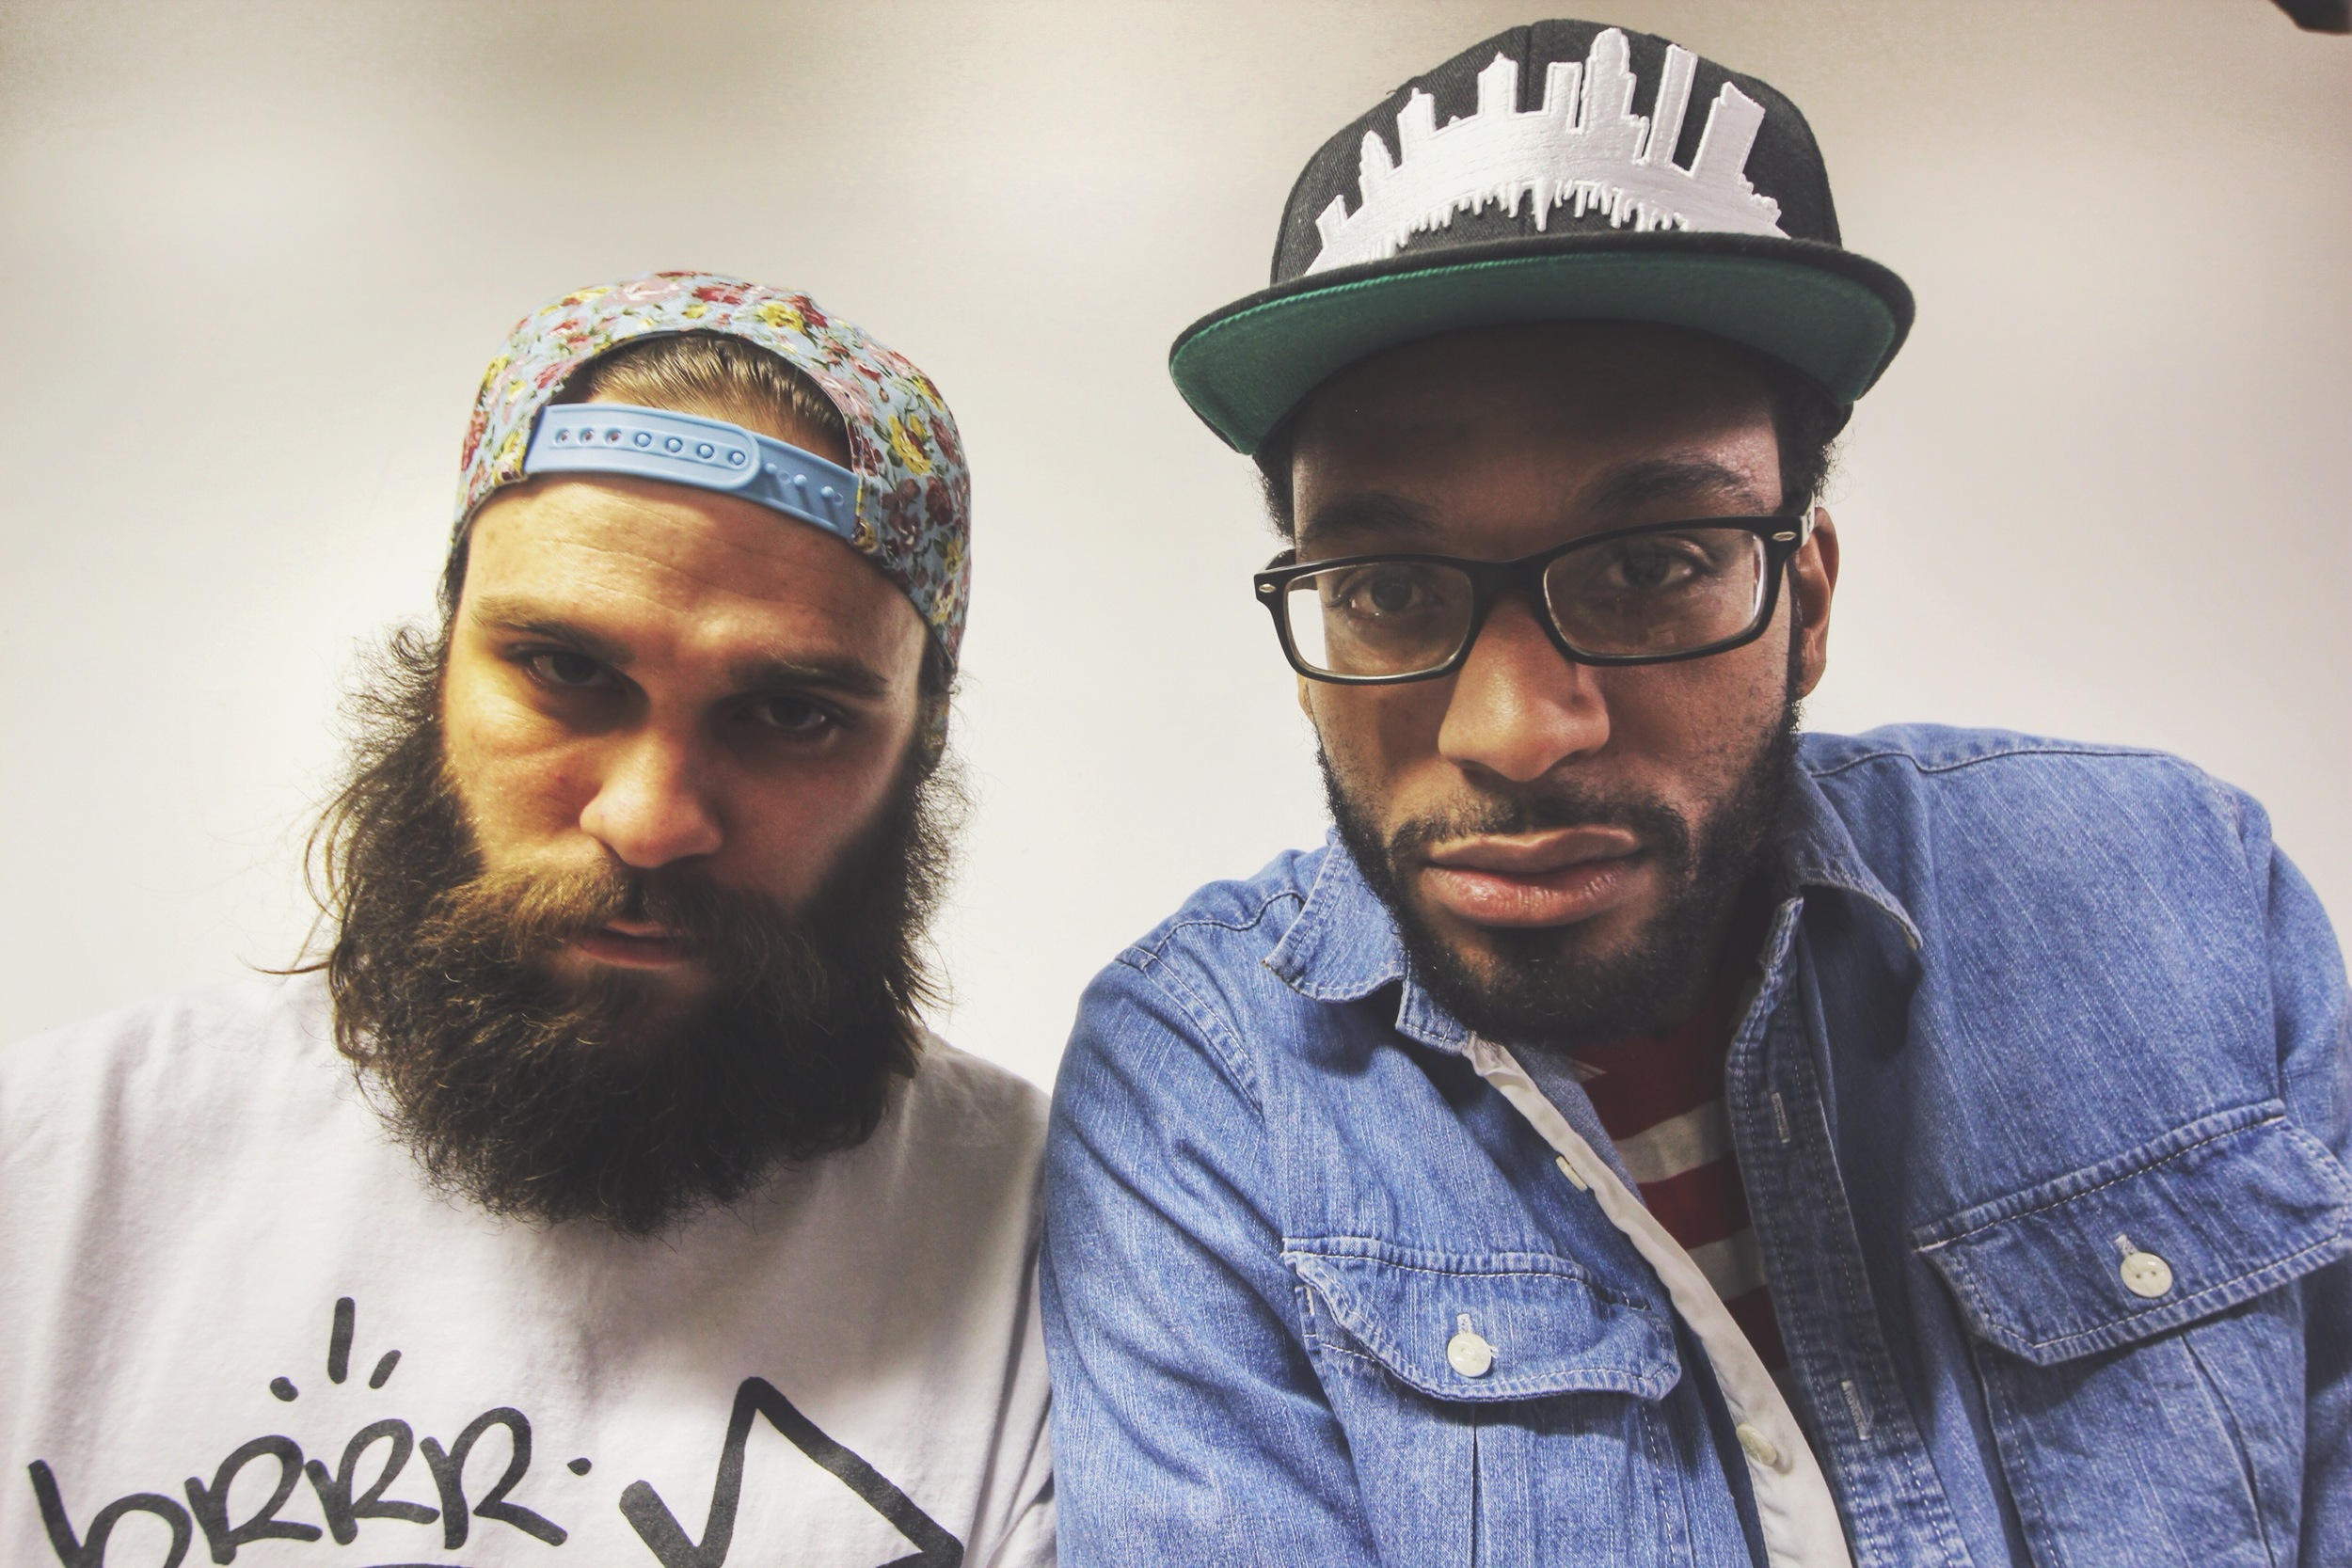 """Thanks to Dr Dundiff for taking the time to bless us with a guest cameo for the upcoming music video for """"The Plug"""". Keep ya eyes peeled for collaborations between these two monsters of Louisville hip-hop in the near future."""